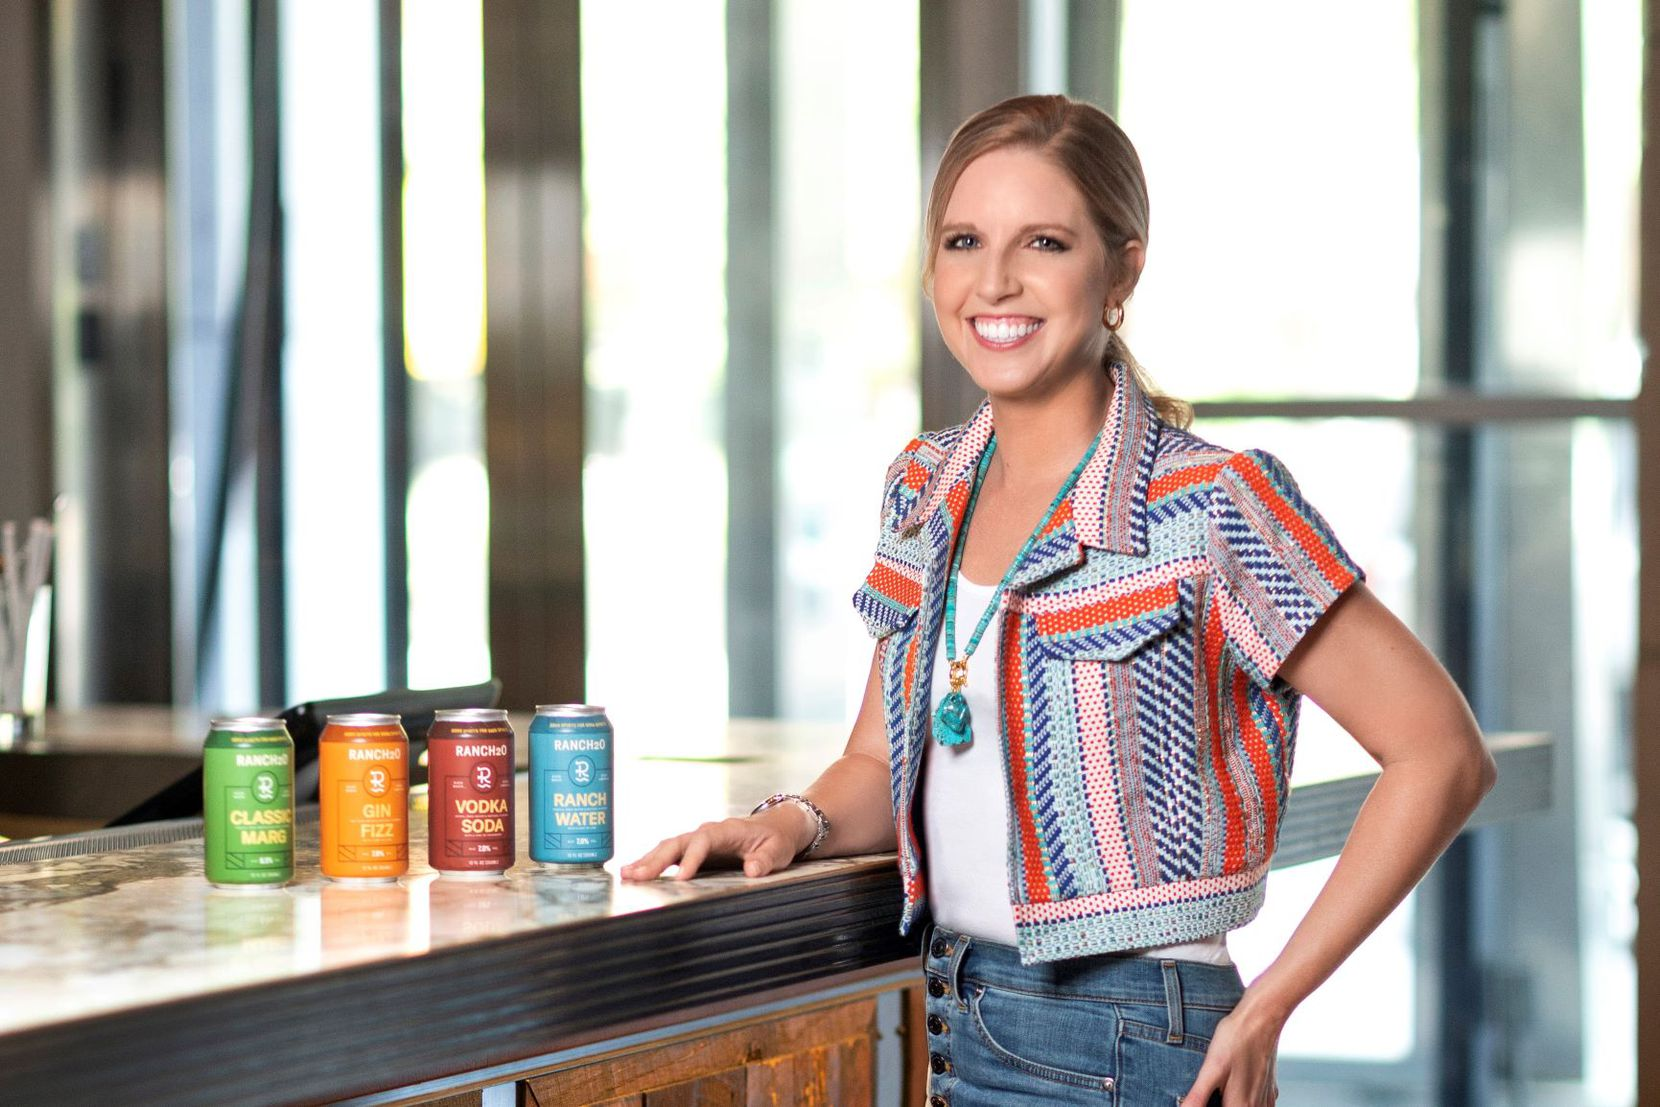 Amelia Lettieri is the founder of RancH2O.